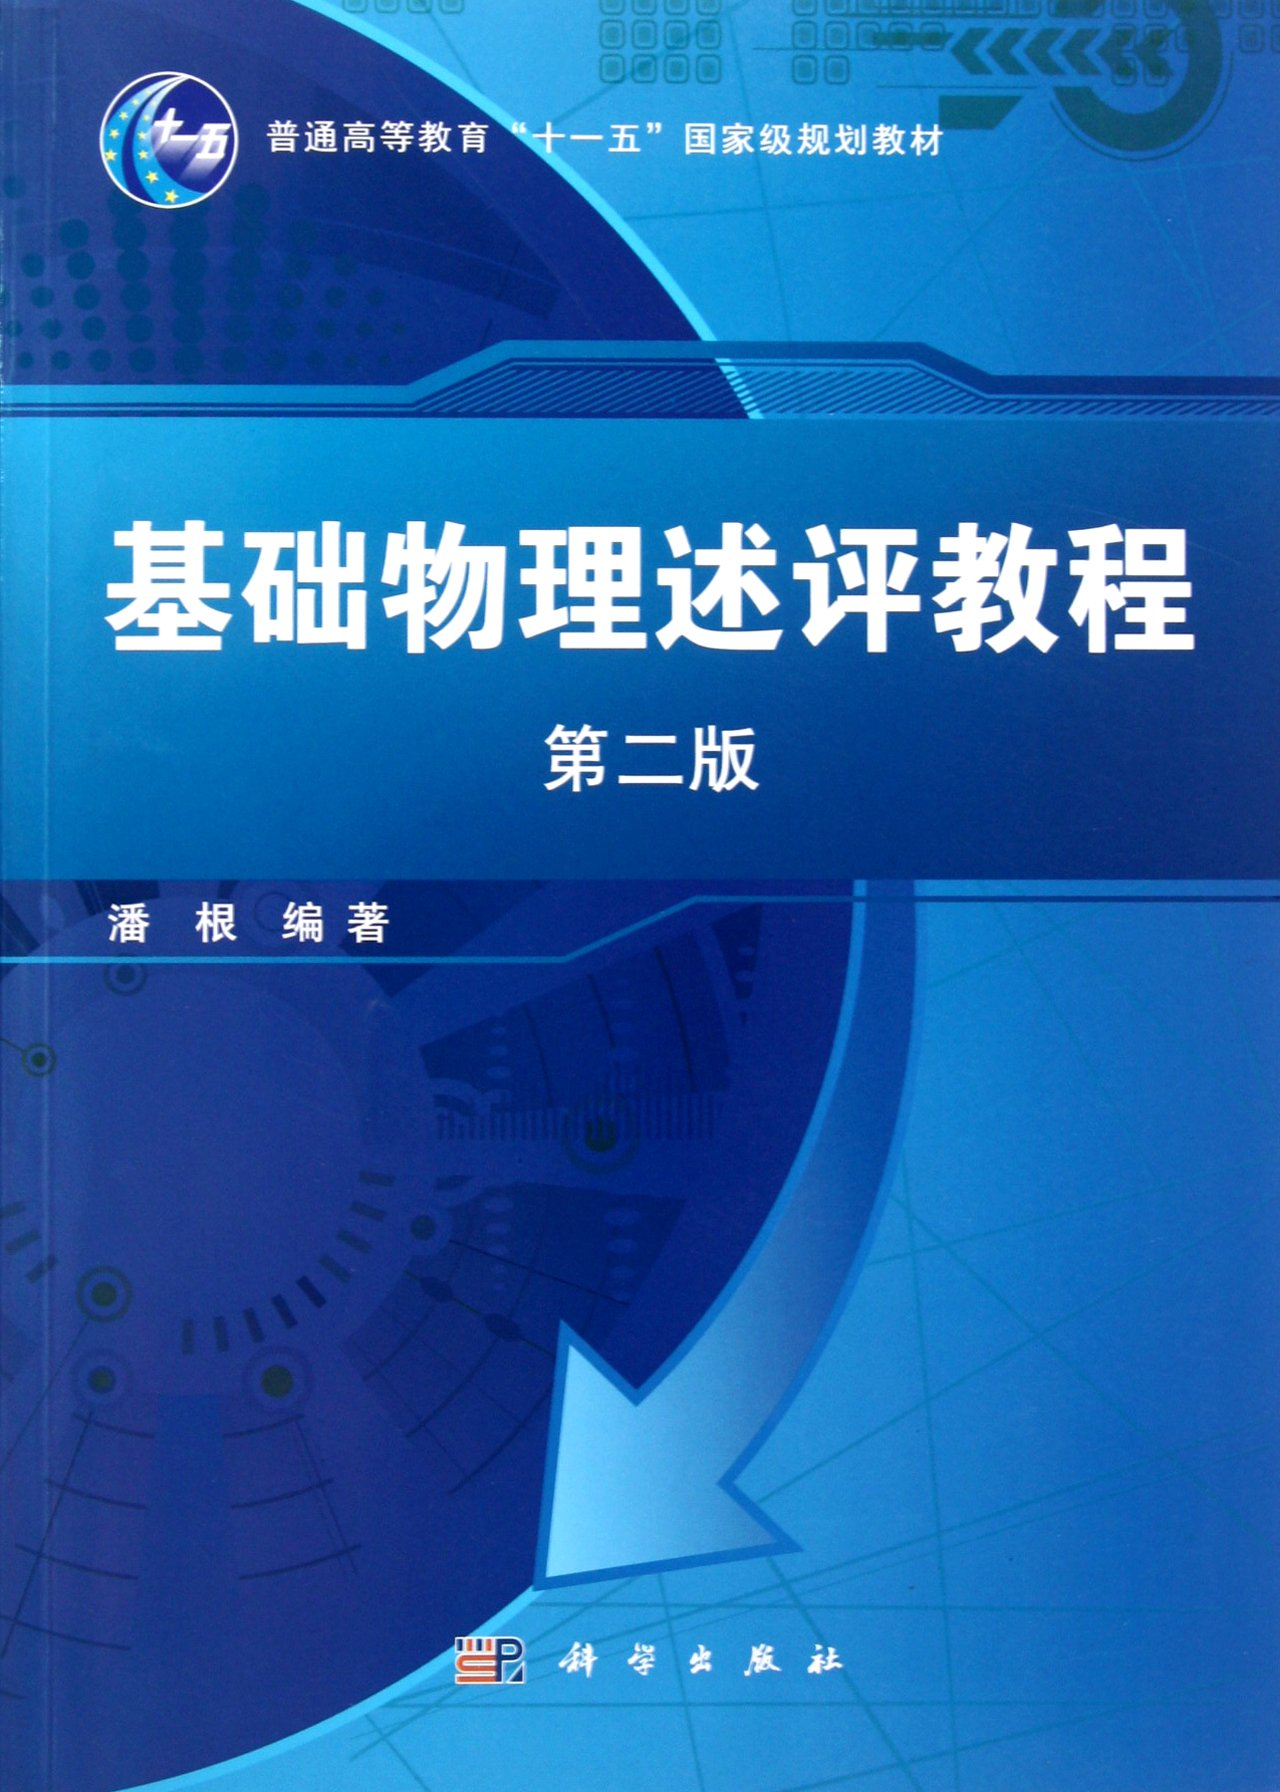 Read Online Basic Physics Commenting Course (Second Edition, Eleventh Five-year Planned Textbooks for General Higher Education) (Chinese Edition) pdf